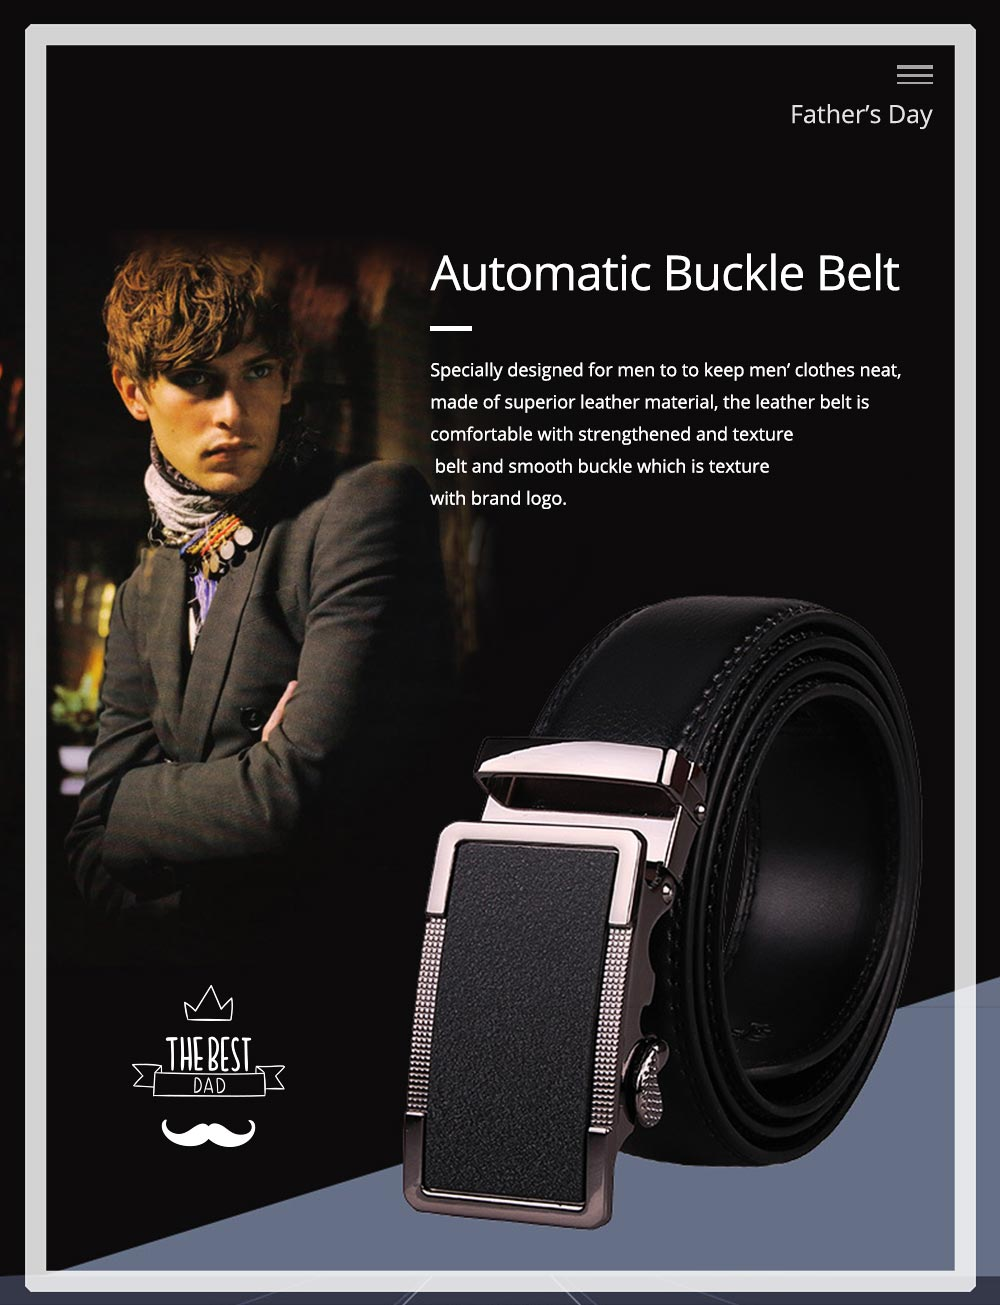 Men' Alloy Automatic Buckle Belt with Stainless Steel Buckle, Second Floor Leather Polished Stone Business Belt 0